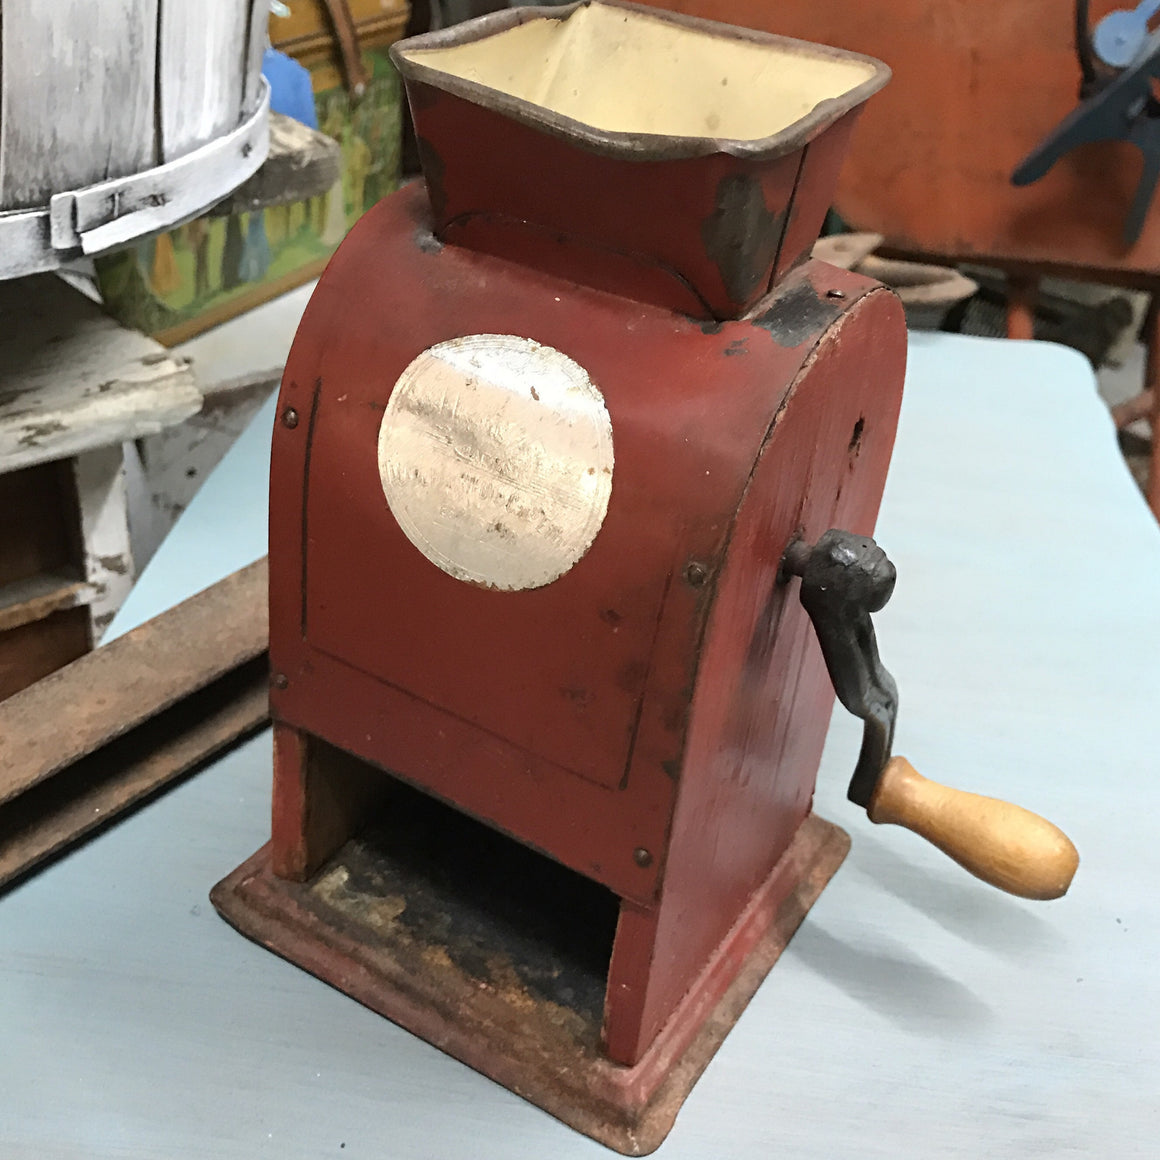 1940's Carl Ramstedt Swedish crank Coffee Mill - VINTAGE JOURNEY MARKET - Upcycling & Restoration